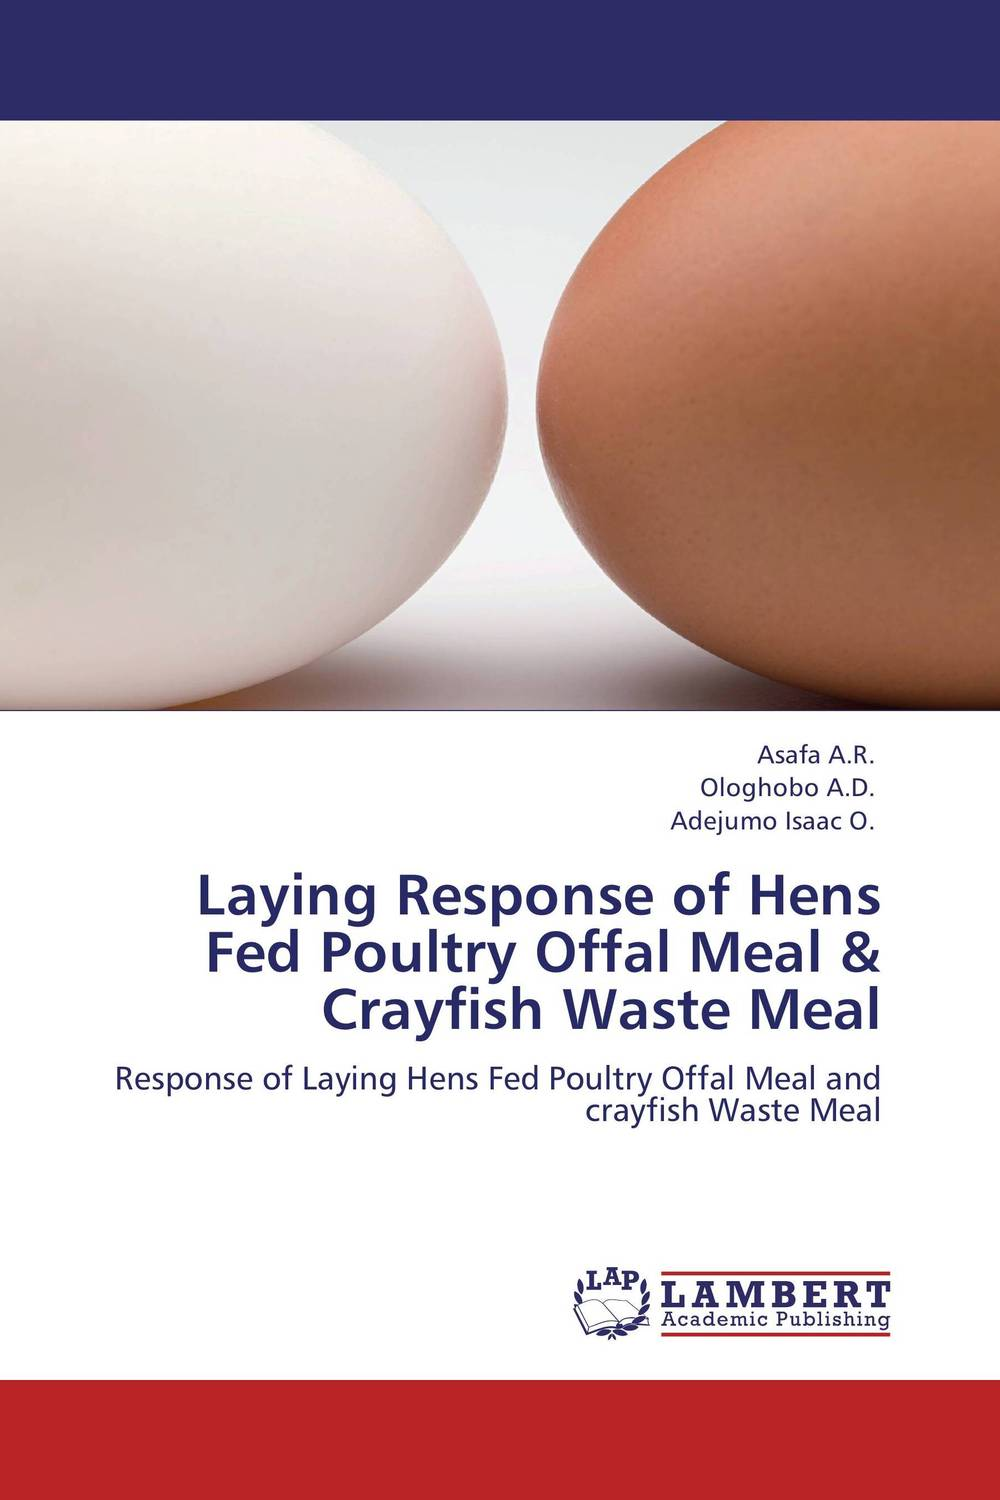 Laying Response of Hens Fed Poultry Offal Meal & Crayfish Waste Meal